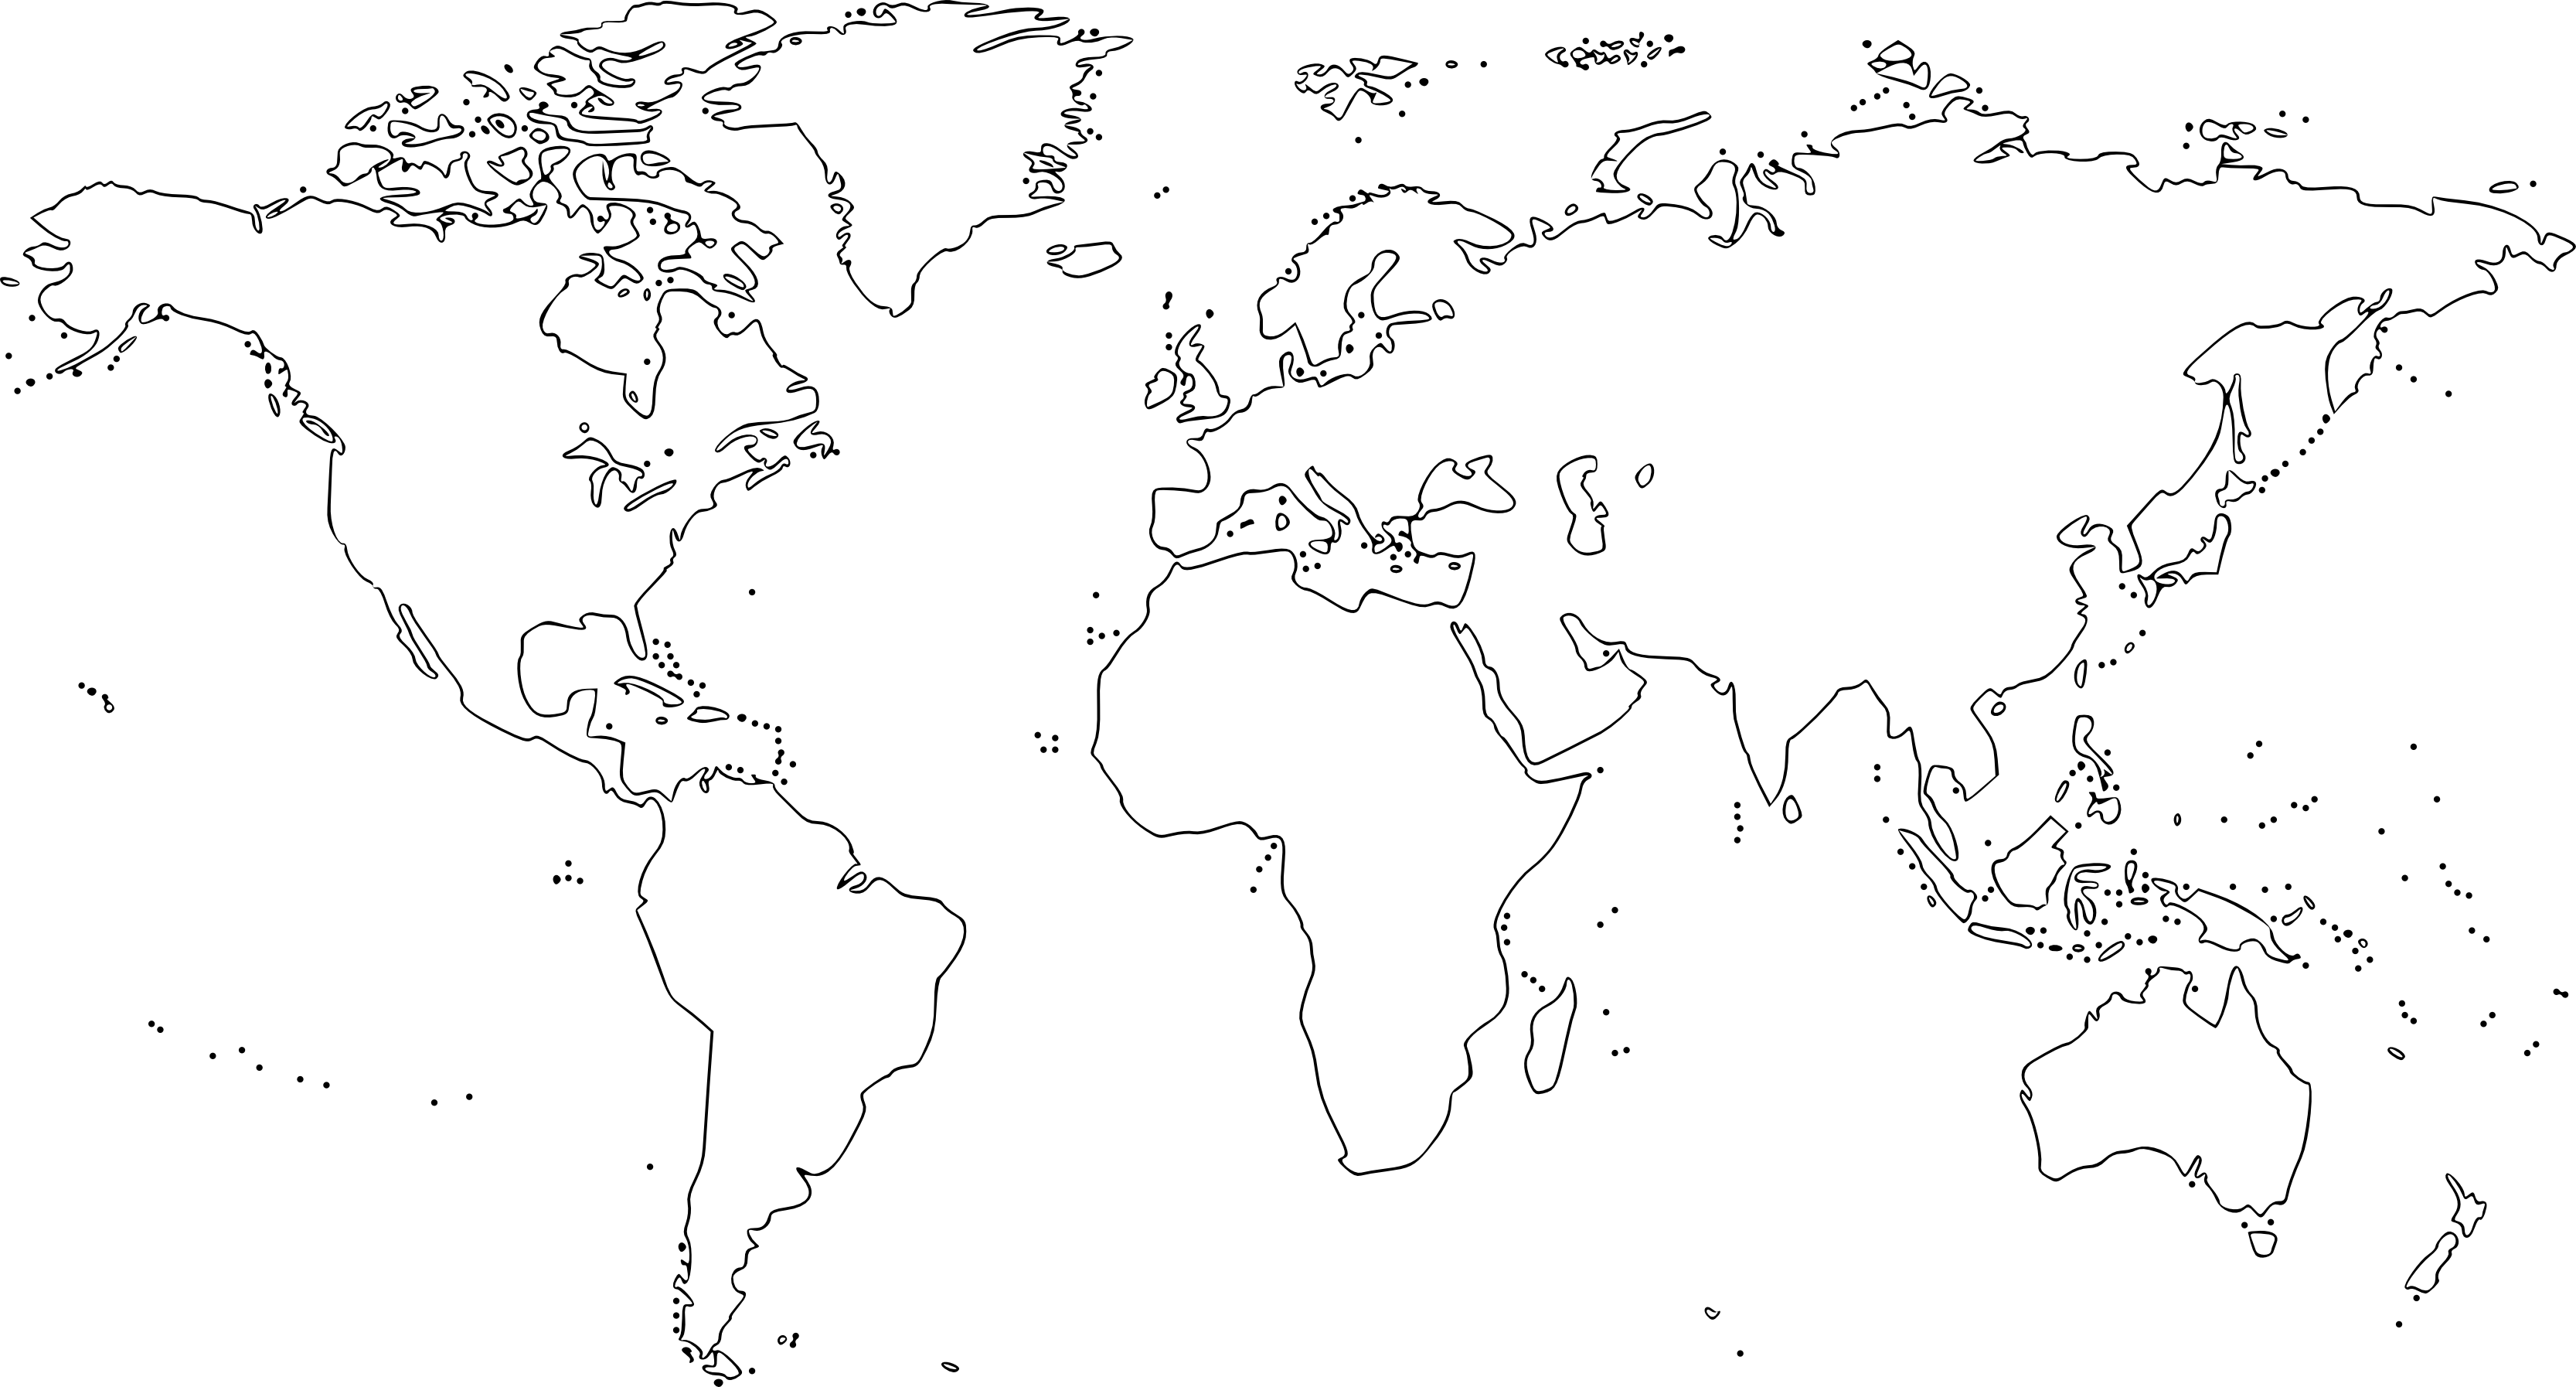 Free Map Black Cliparts Download Free Clip Art Free Clip Art On Clipart Library